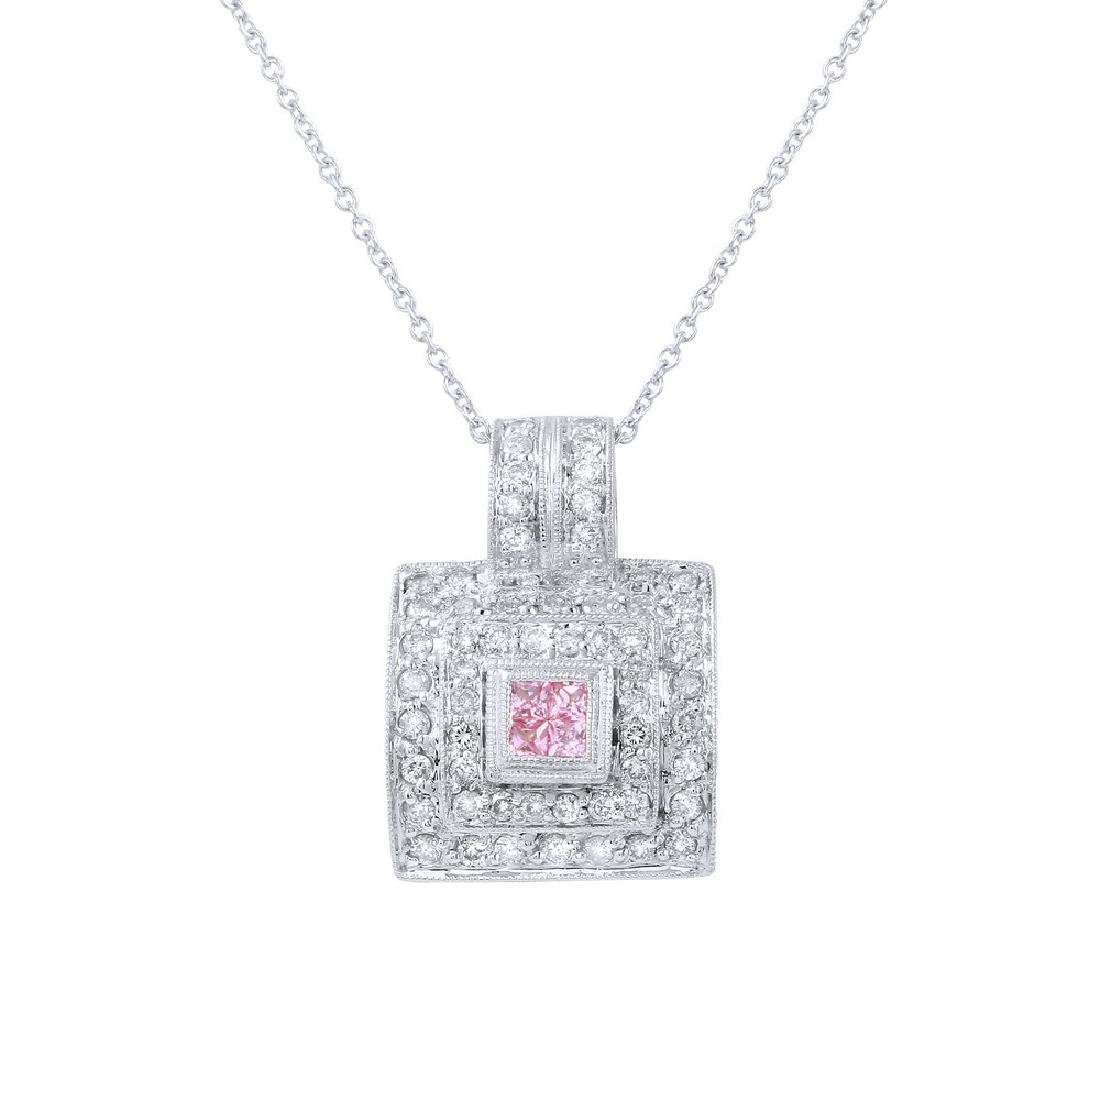 18KT White Gold Pink Sapphire and Diamond Pendant with